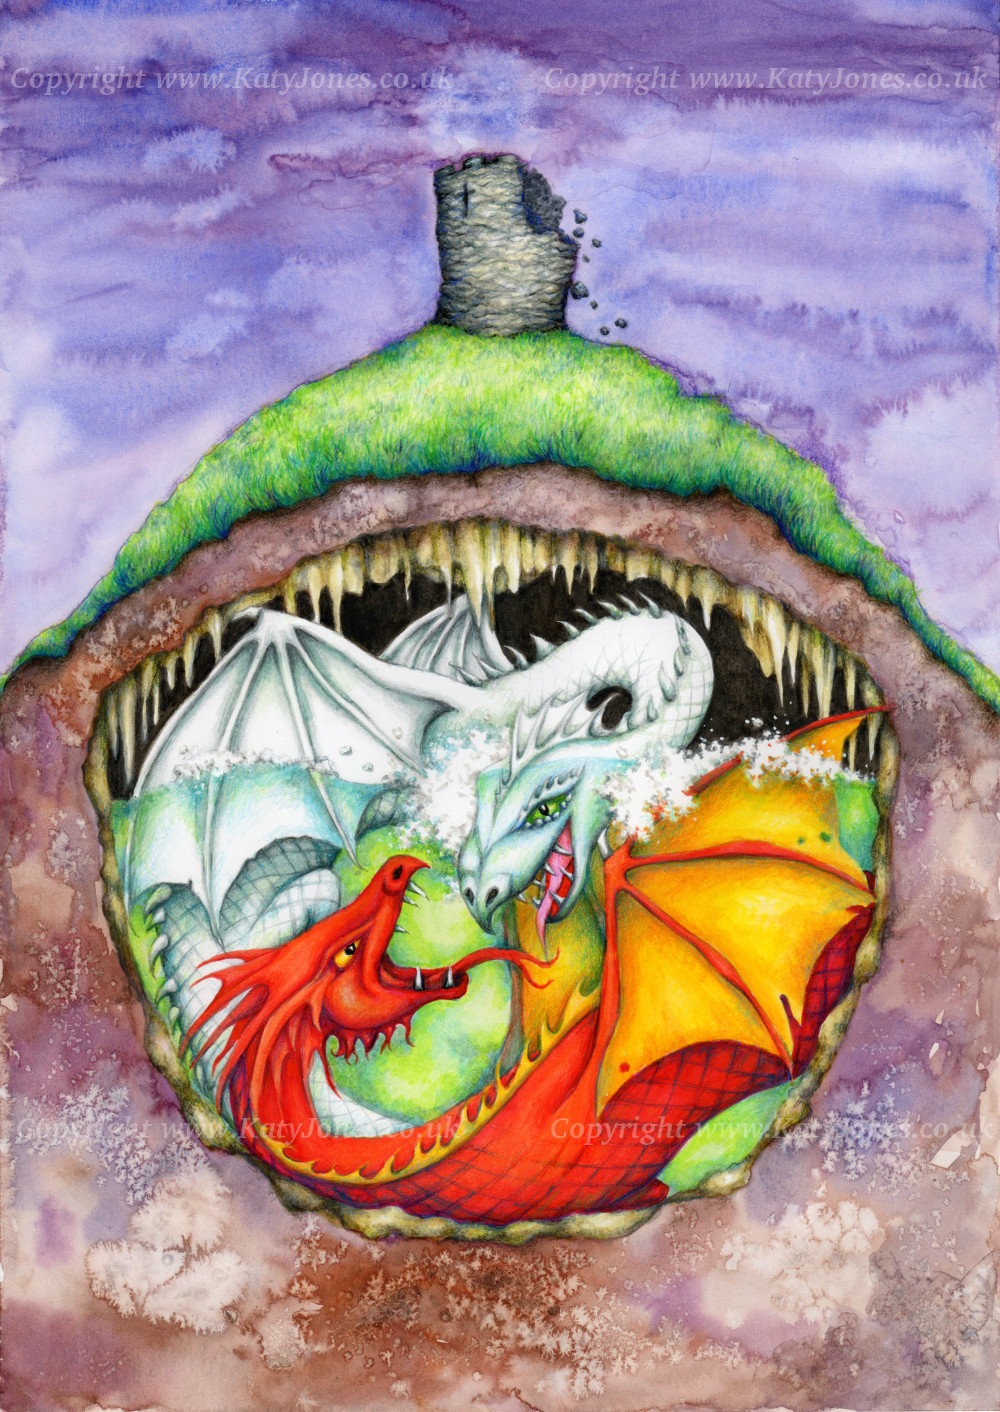 Two dragons fighting underground, beneath a crumbling castle tower